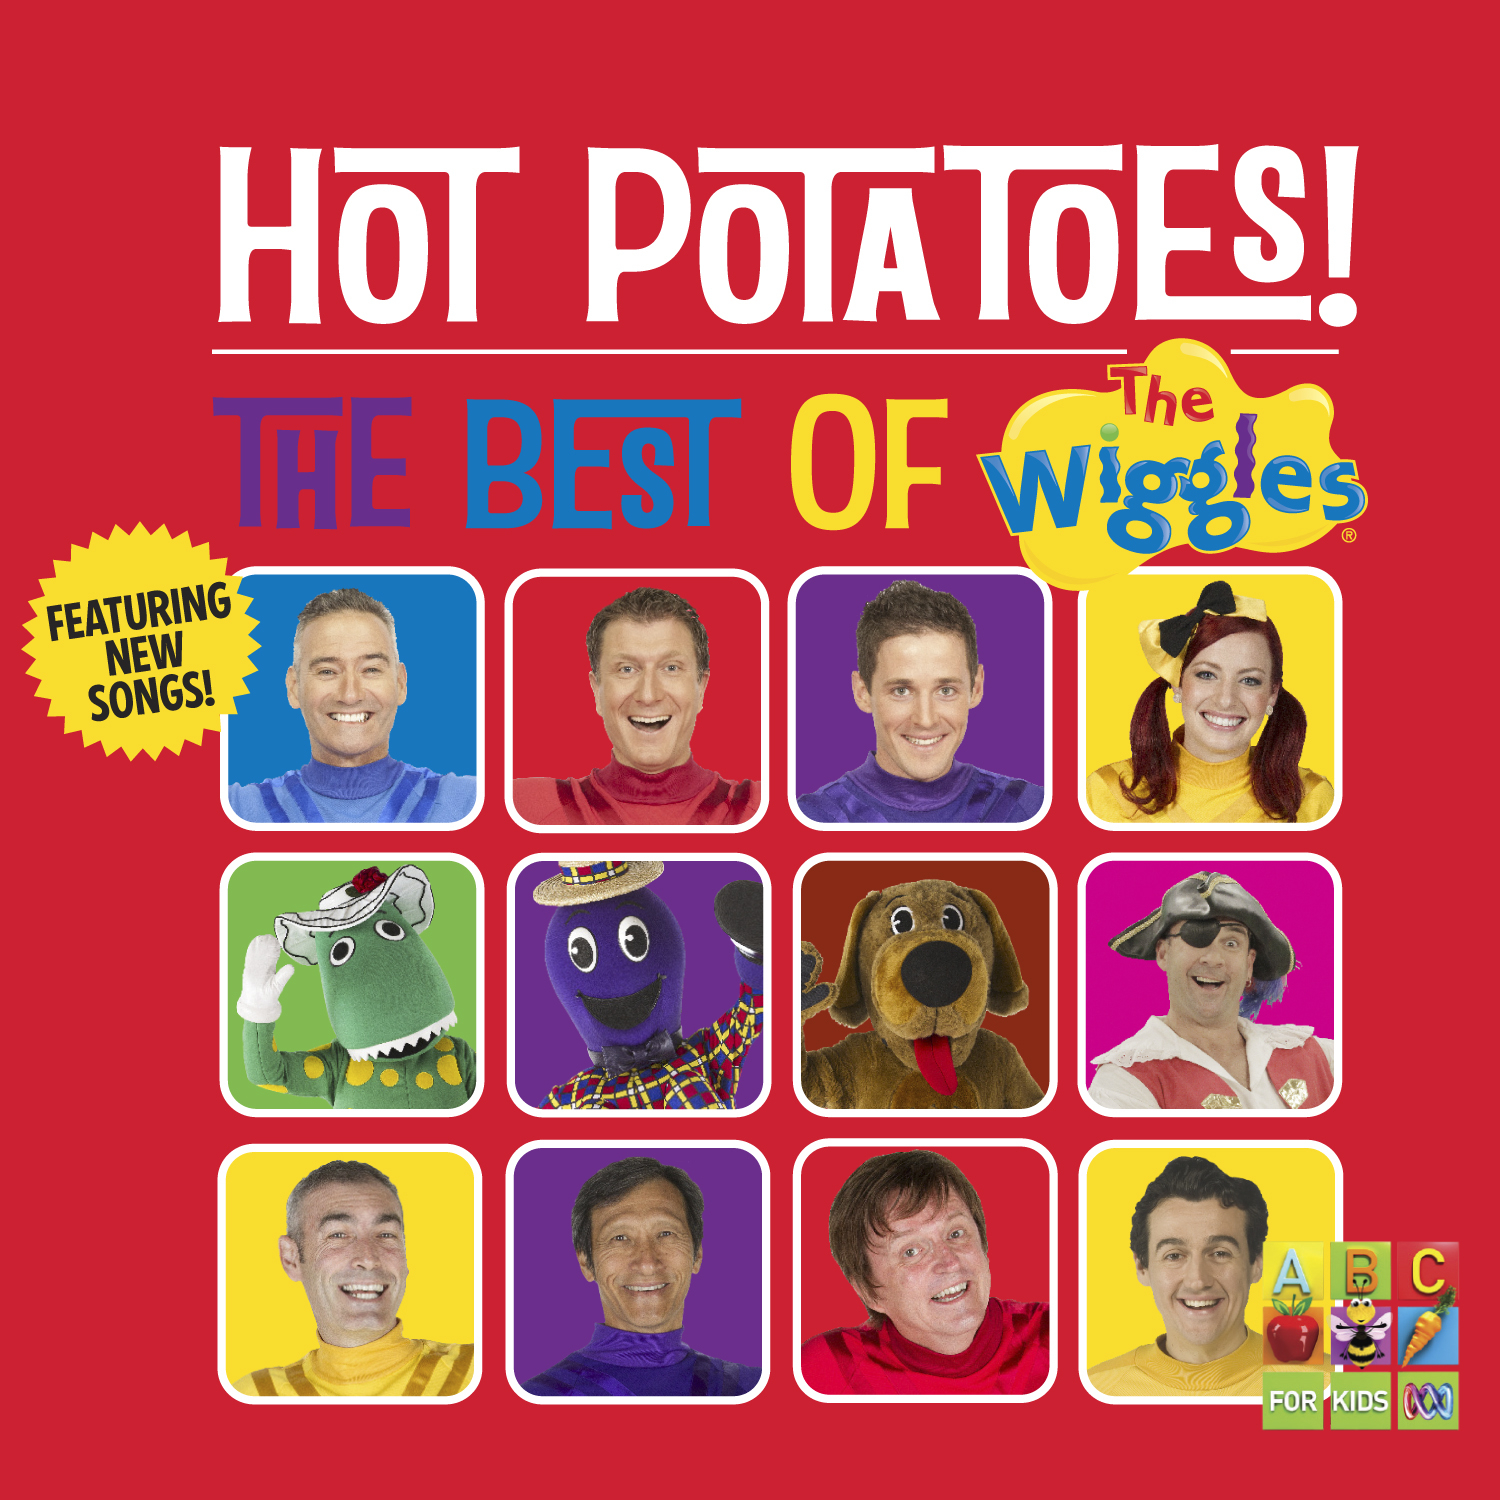 Hot Potatoes! The Best Of The Wiggles (2013 Album